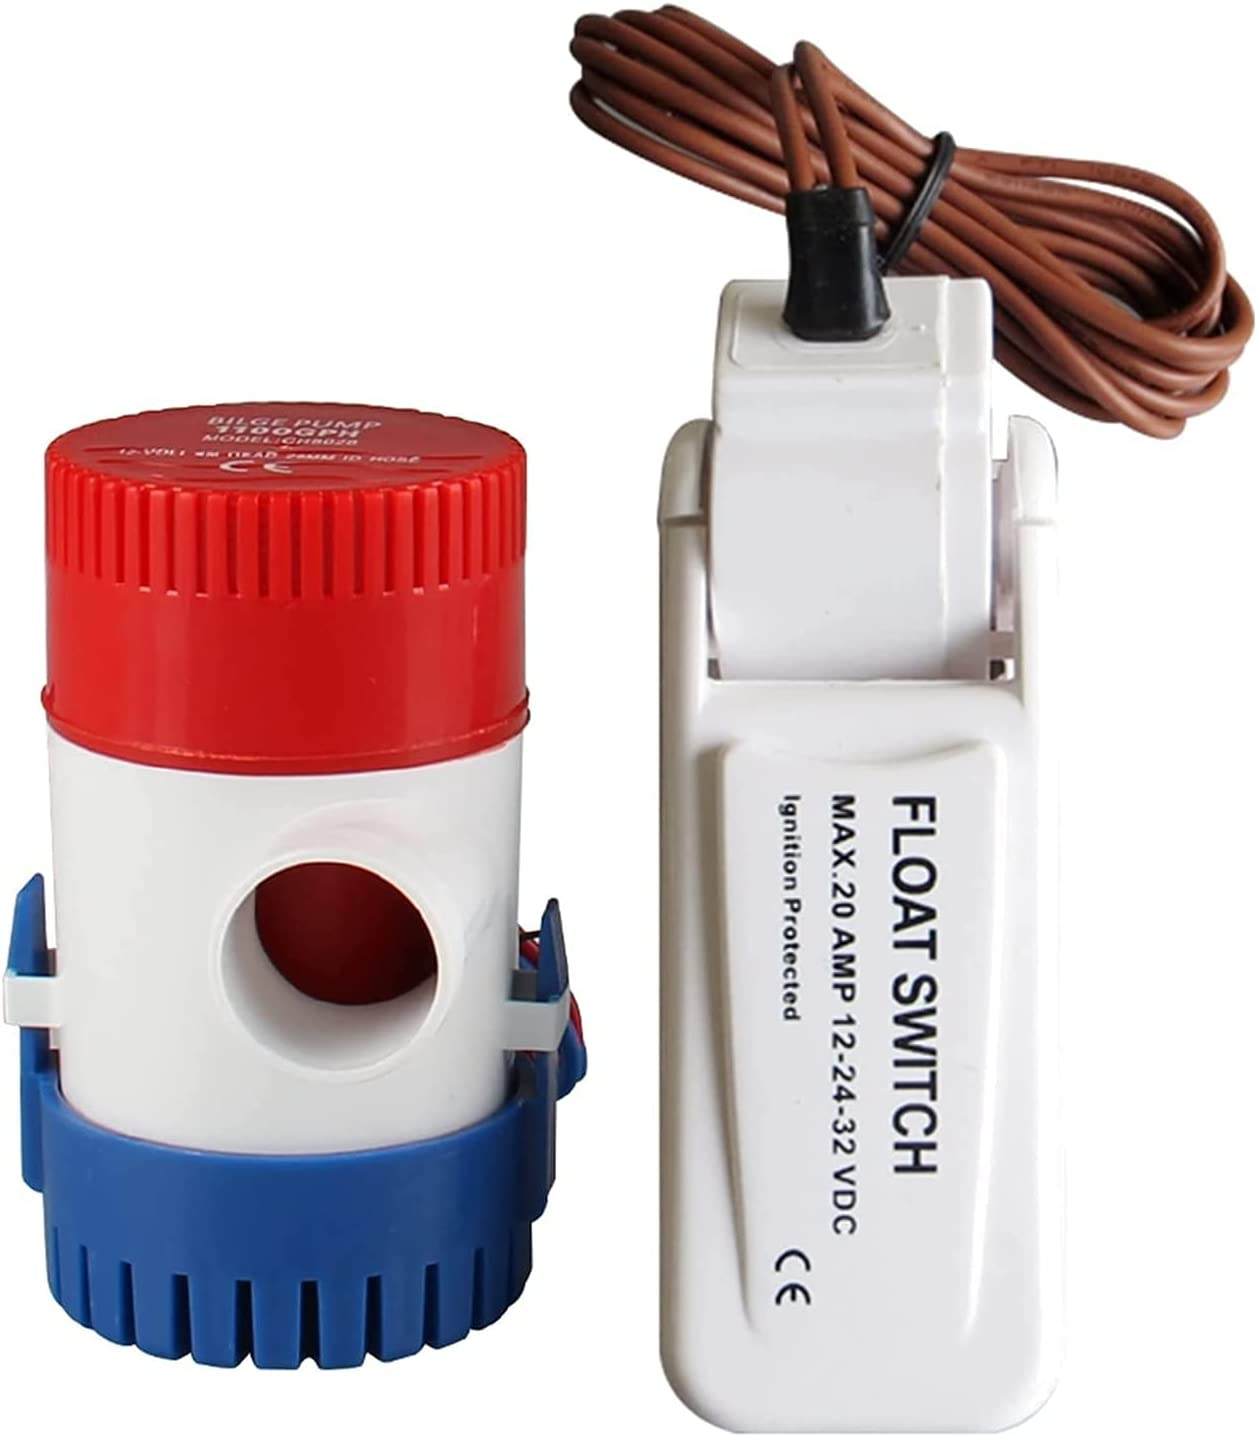 DAYDAY helper Automatic Submersible Our shop most popular Small Pump 12V 11 Boat Bilge Very popular